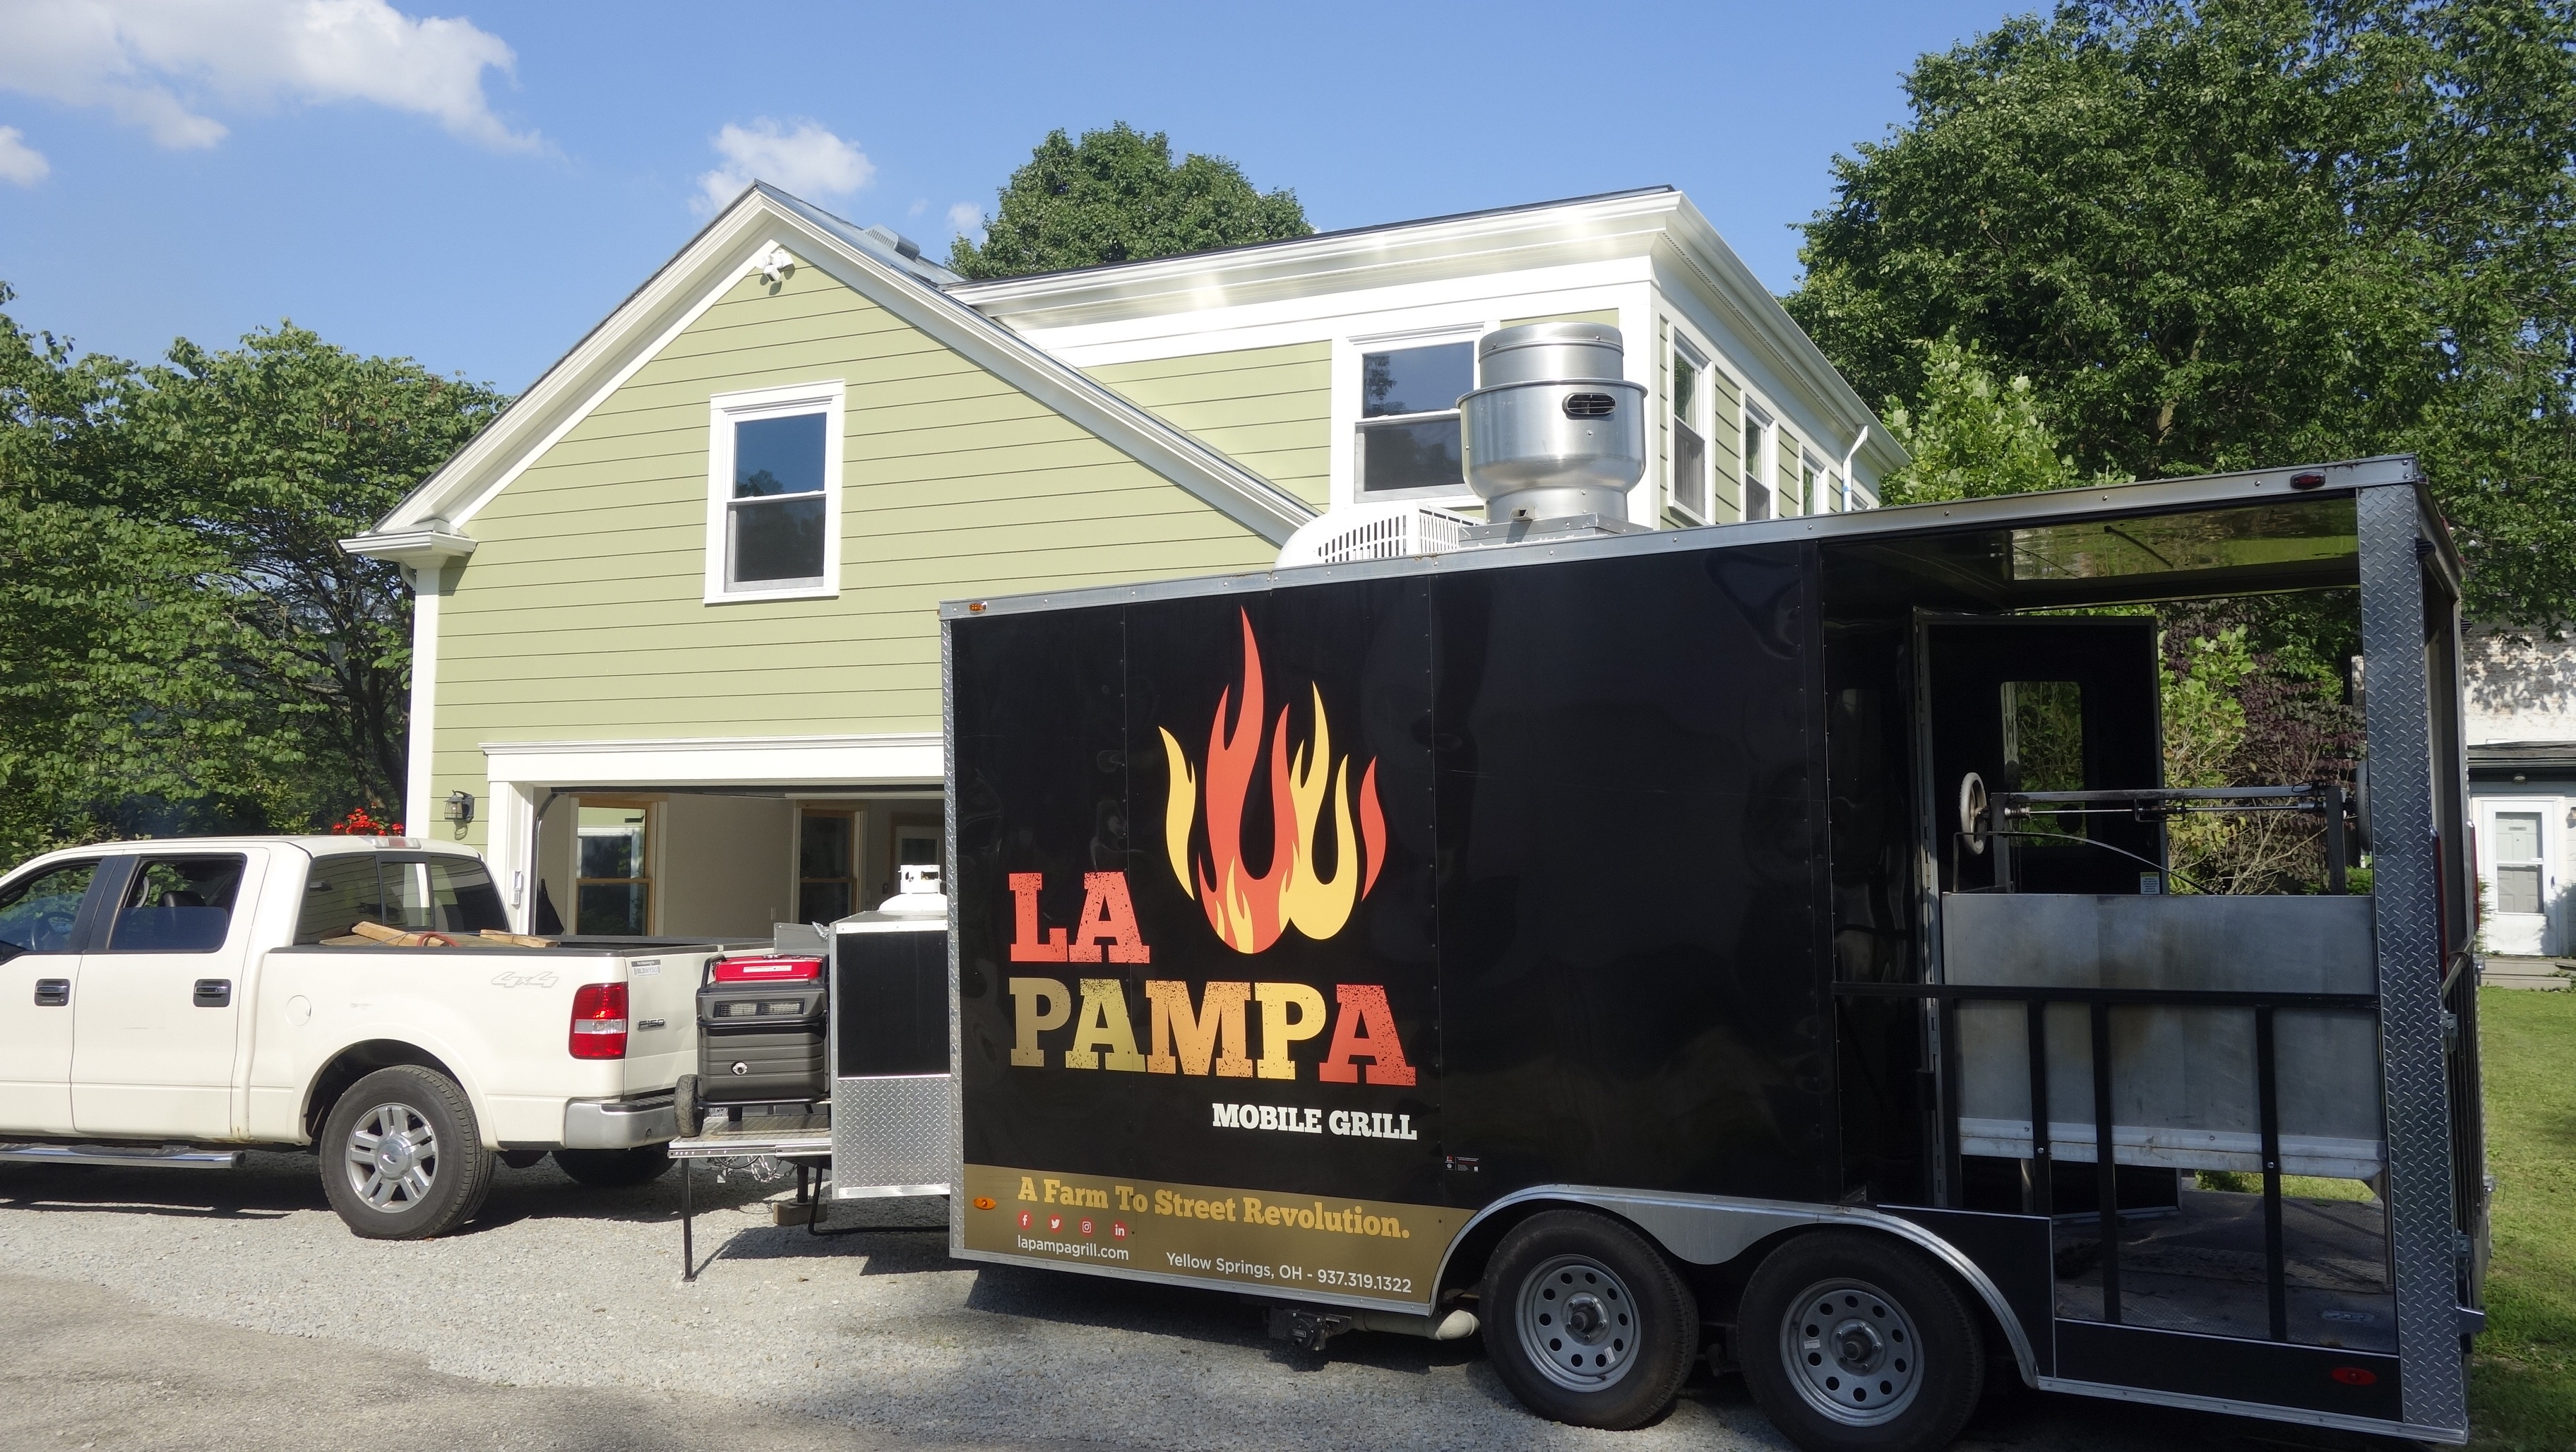 Our fully equipped kitchen and grill is mobile—let us bring the event to you!